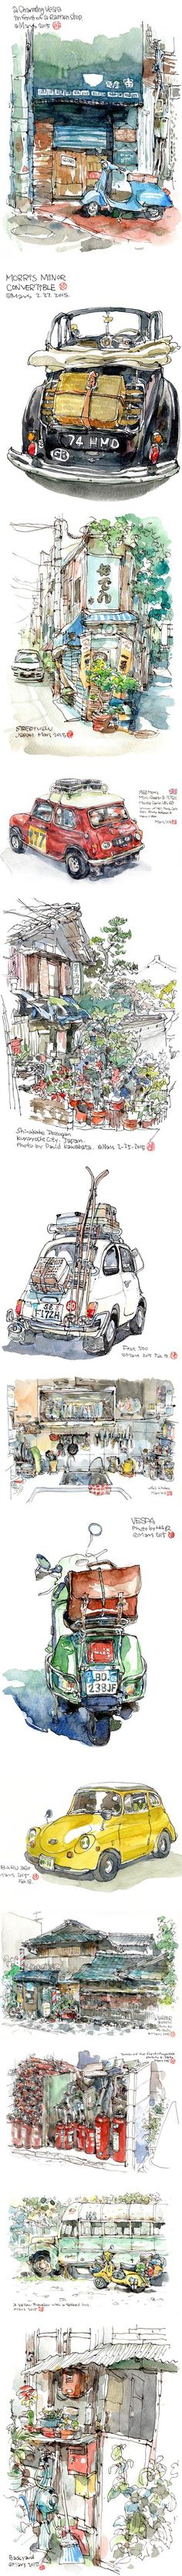 Mars Huang (B6 Drawing Man), watercolor and ink sketches